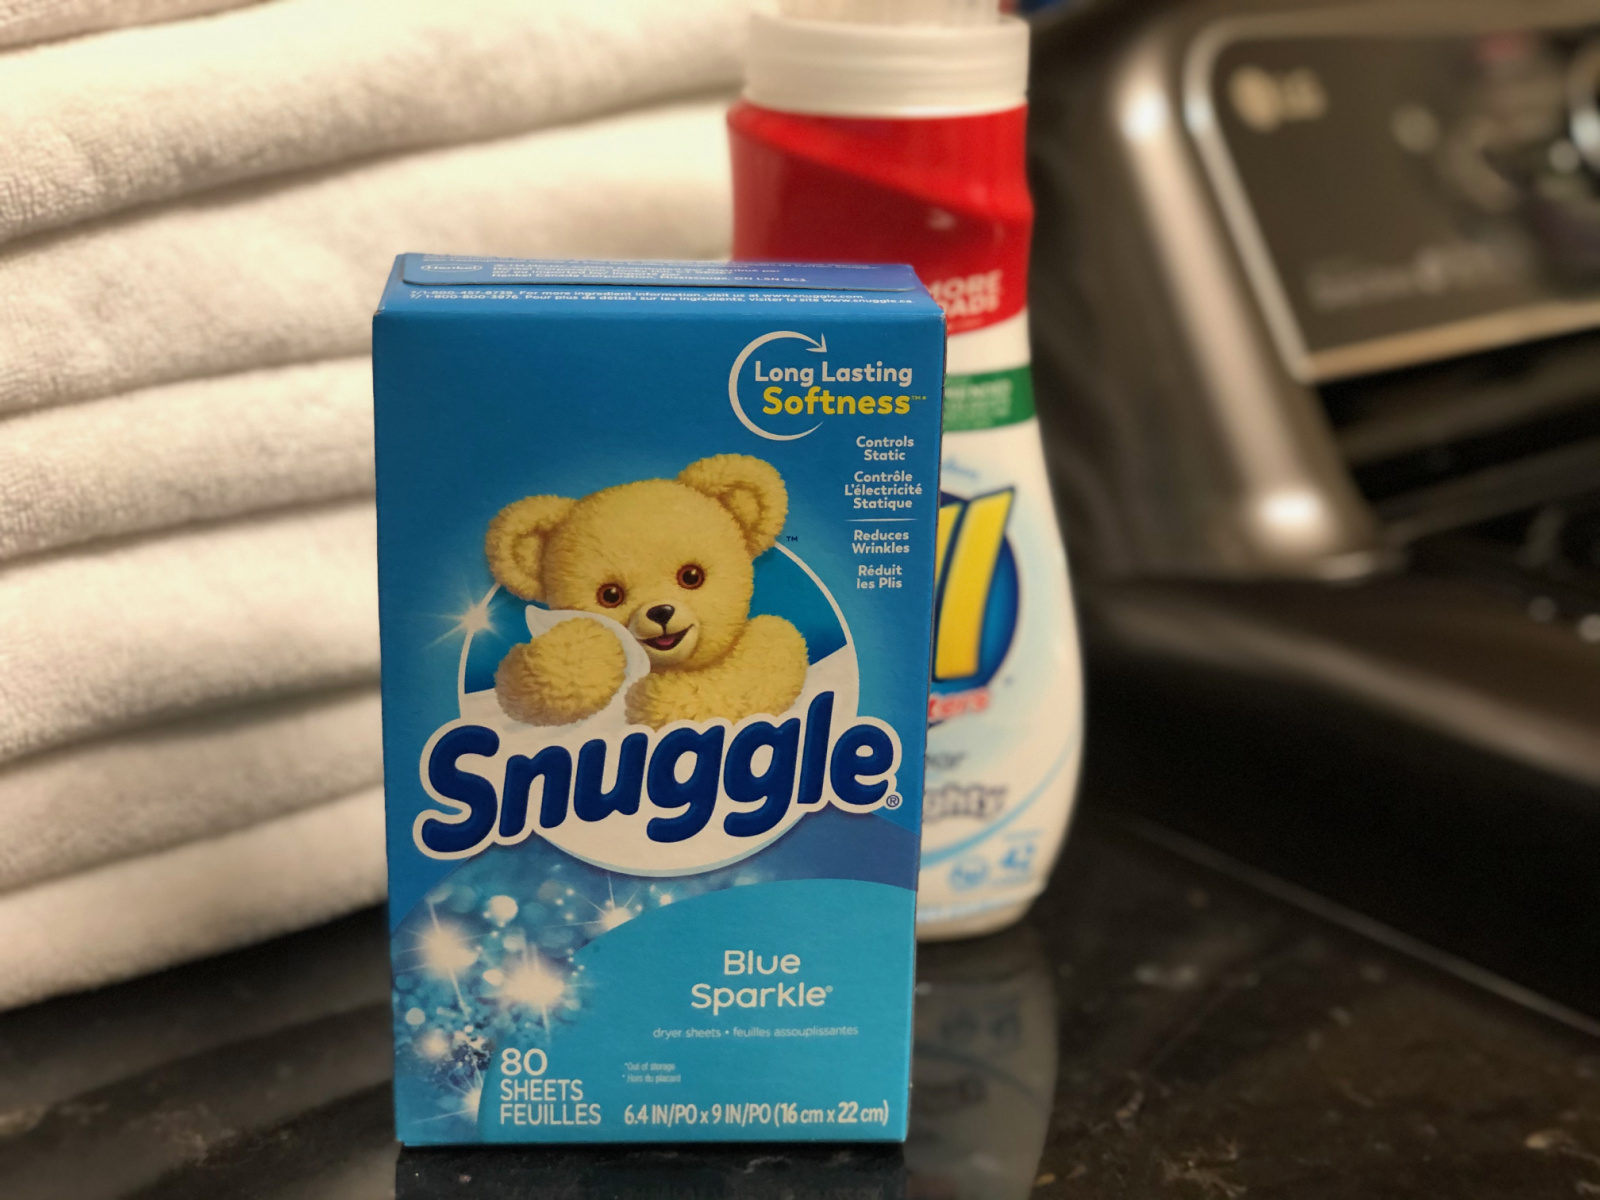 Snuggle Products As Low As $2 At Publix on I Heart Publix 5